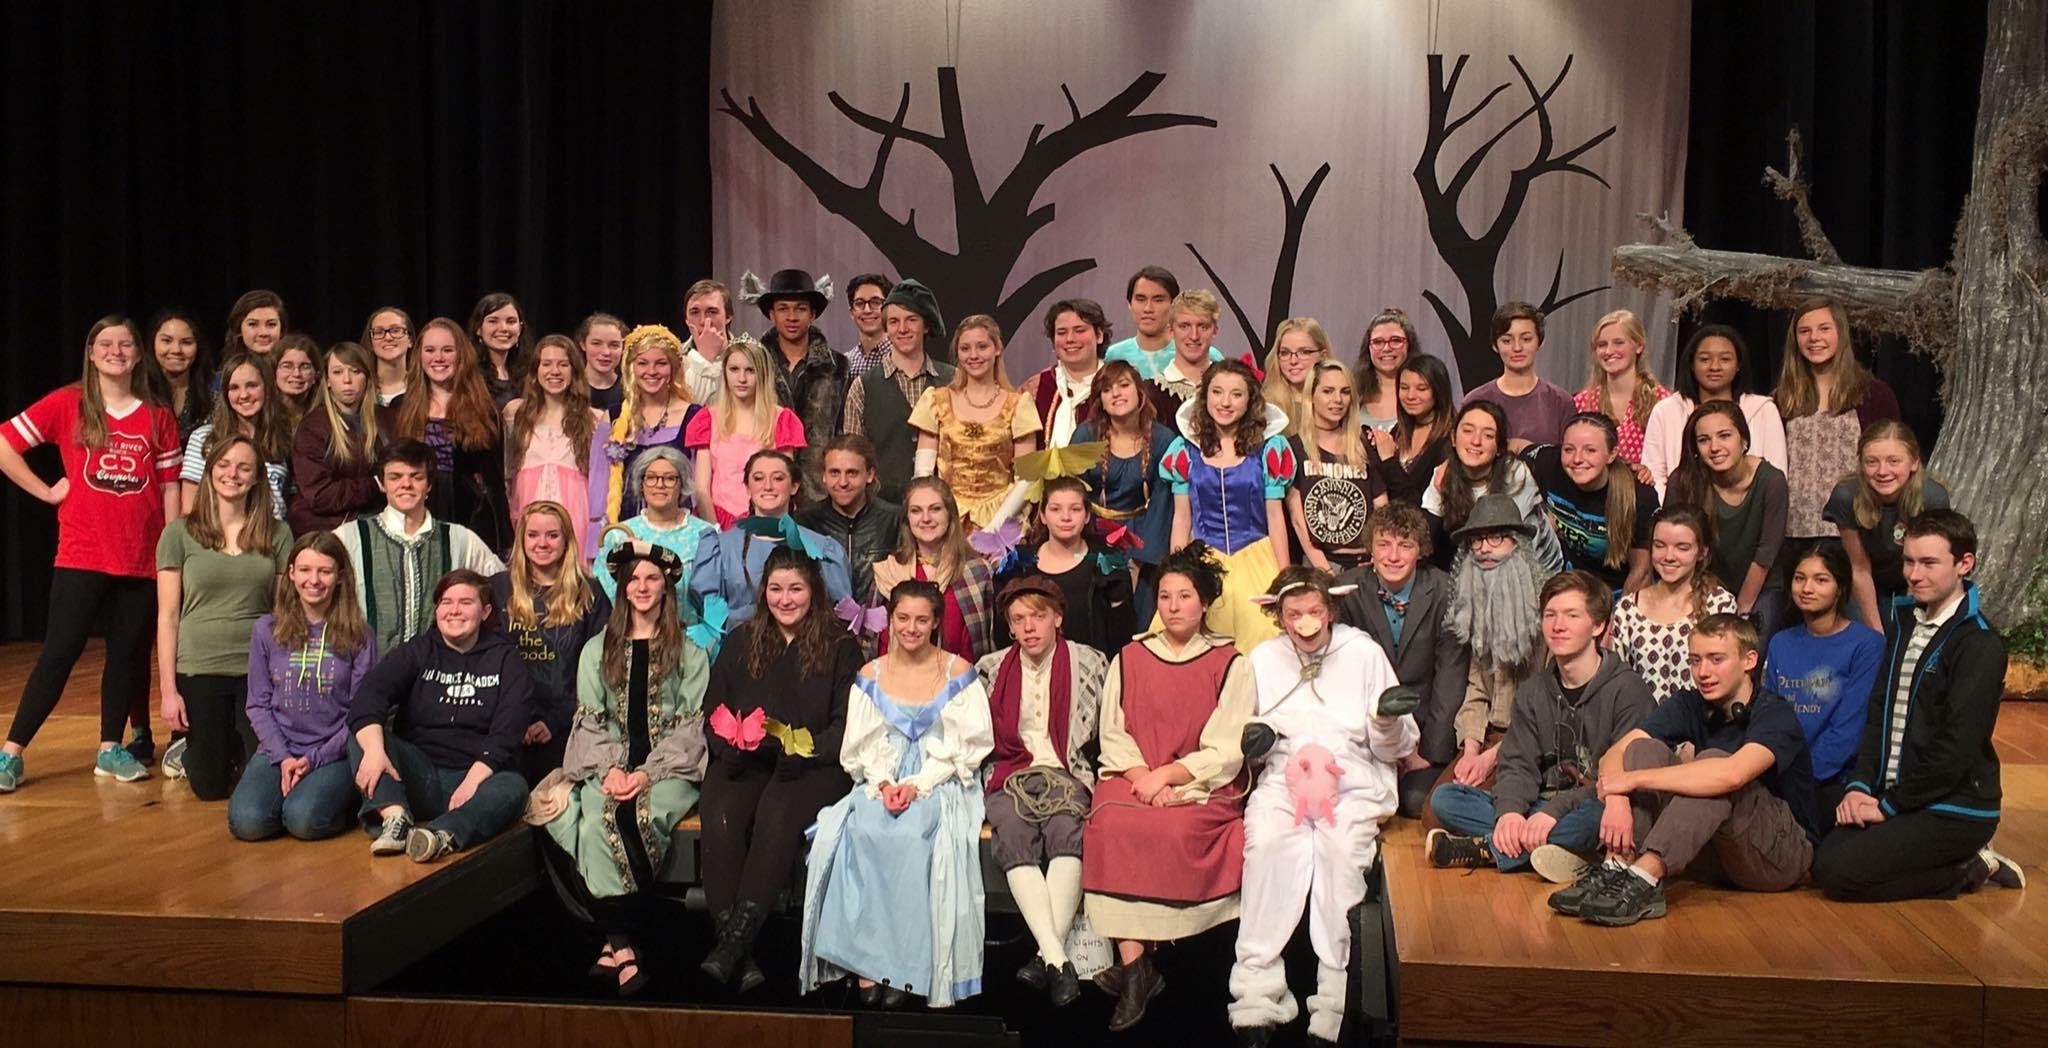 Into the Woods Cast and Crew